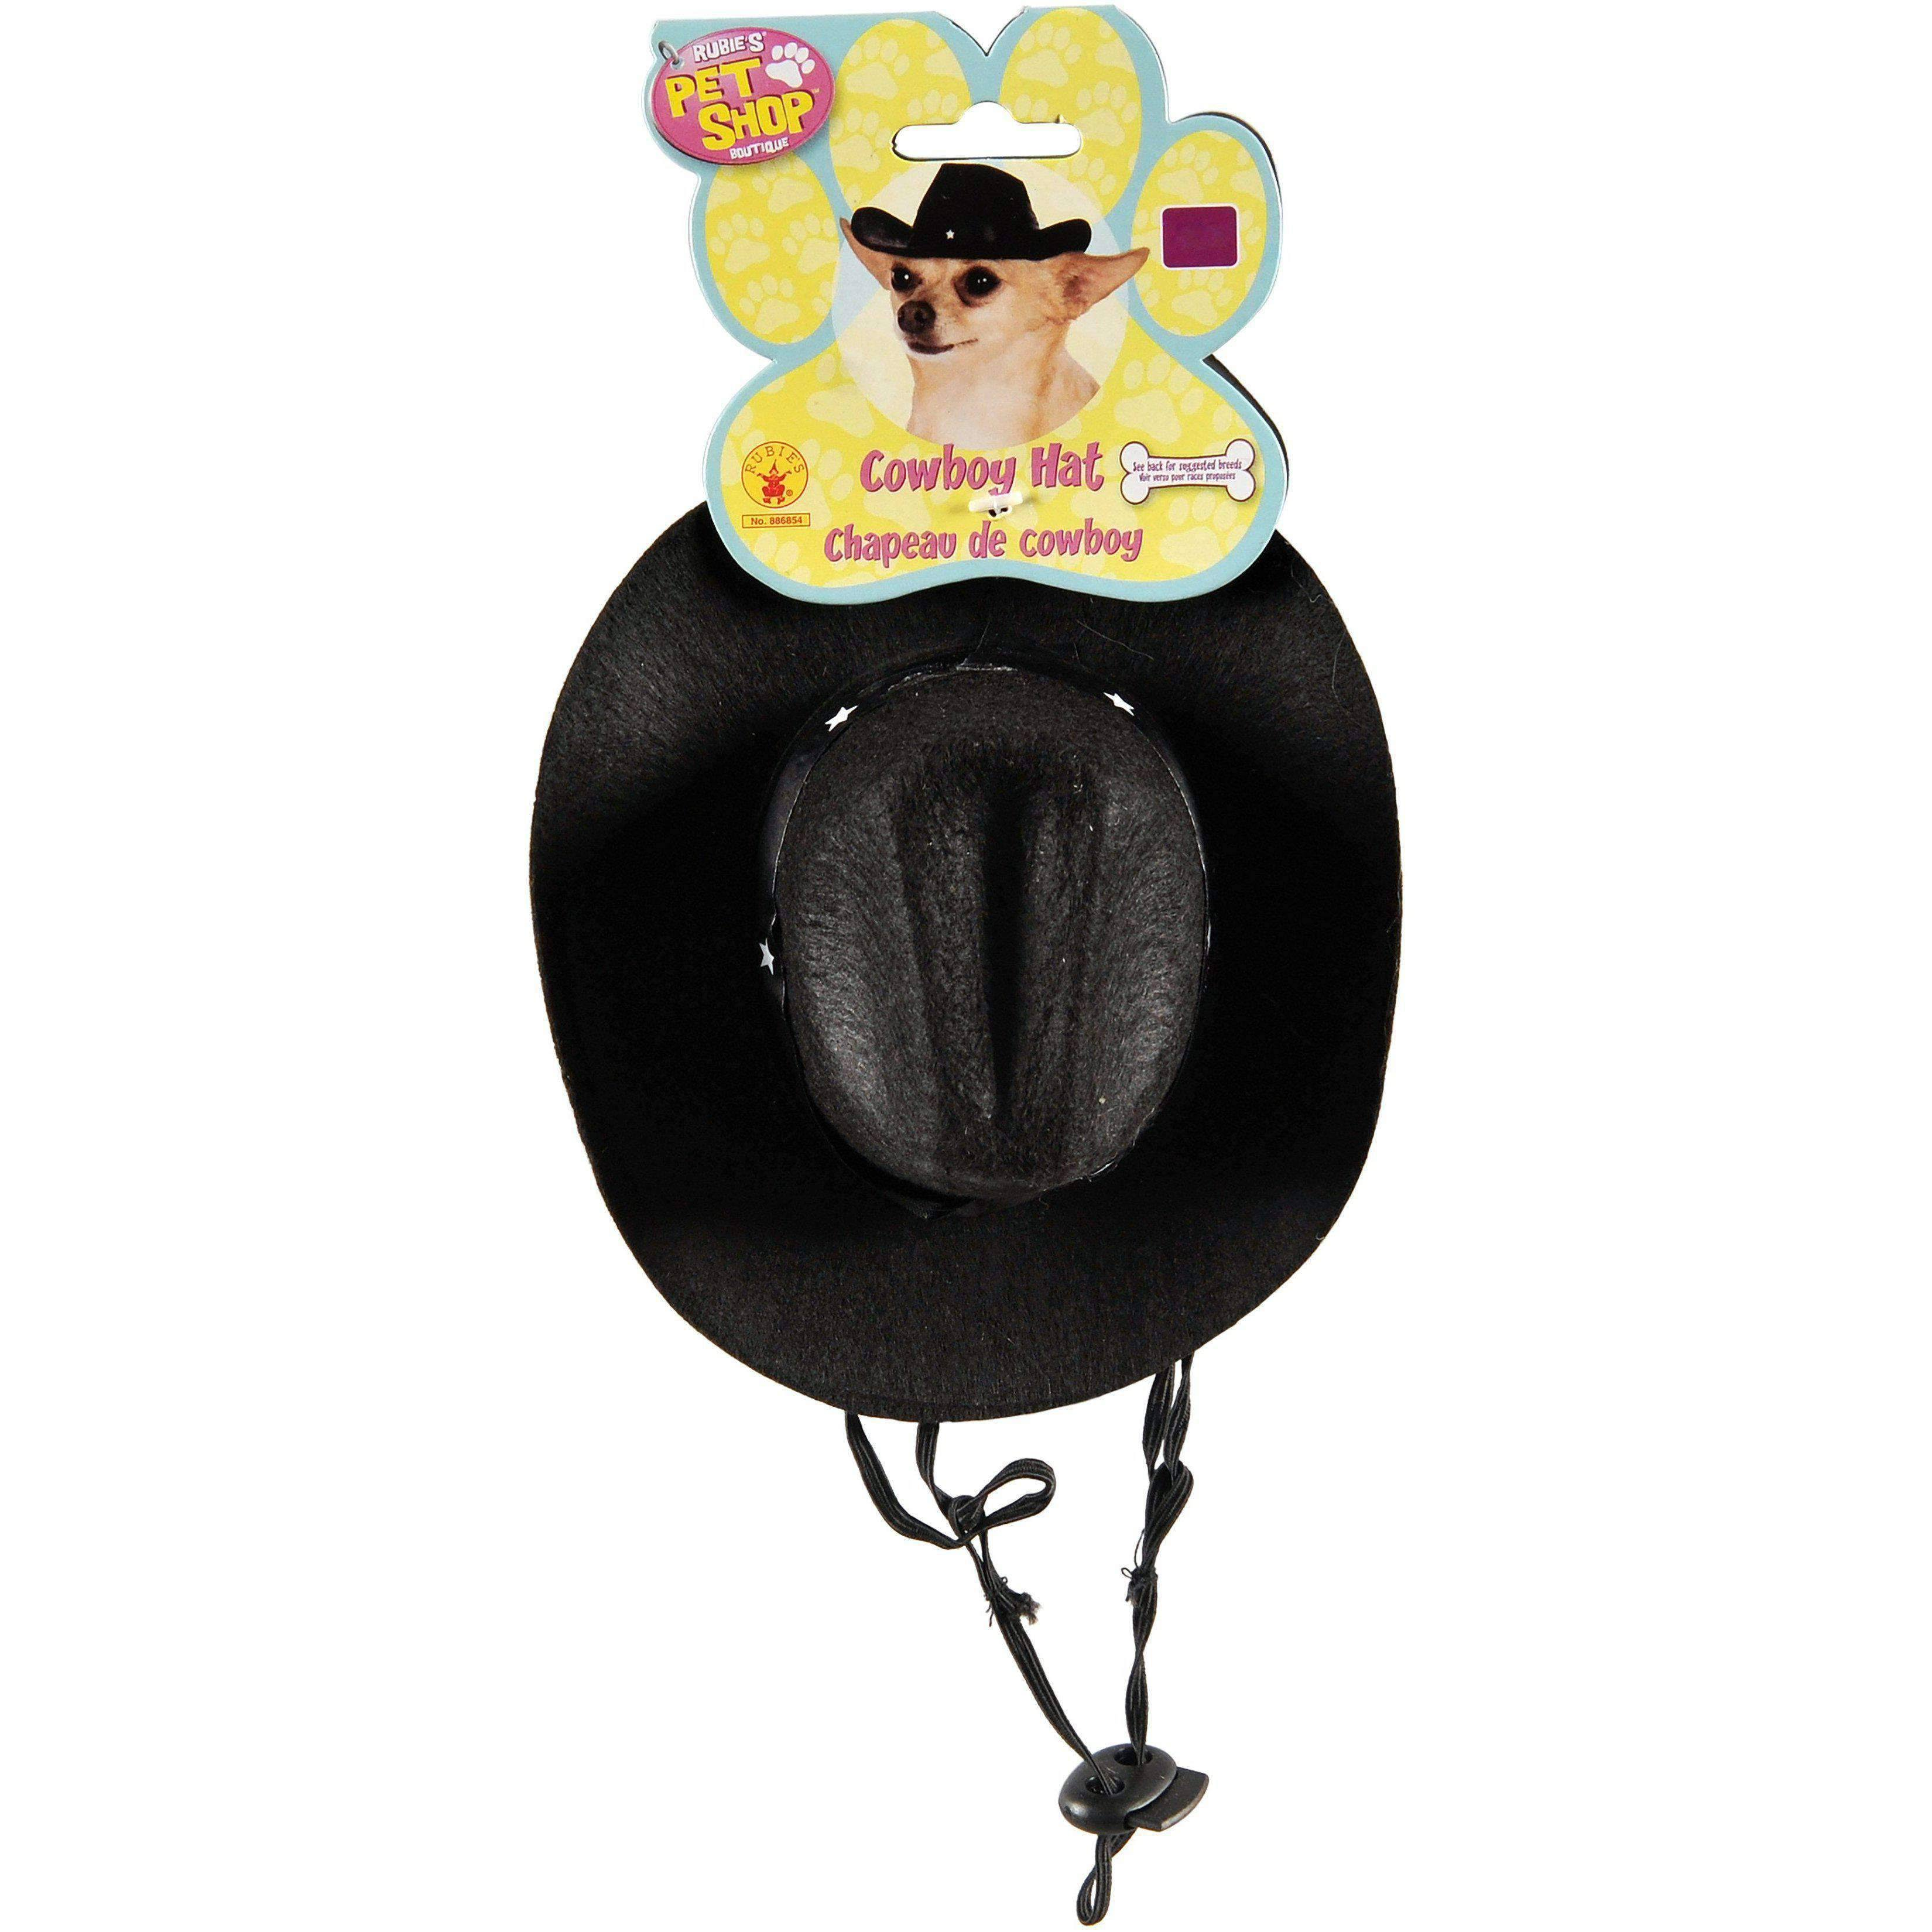 Rubie's Pets' Cowboy Hat - Black, Small to Medium